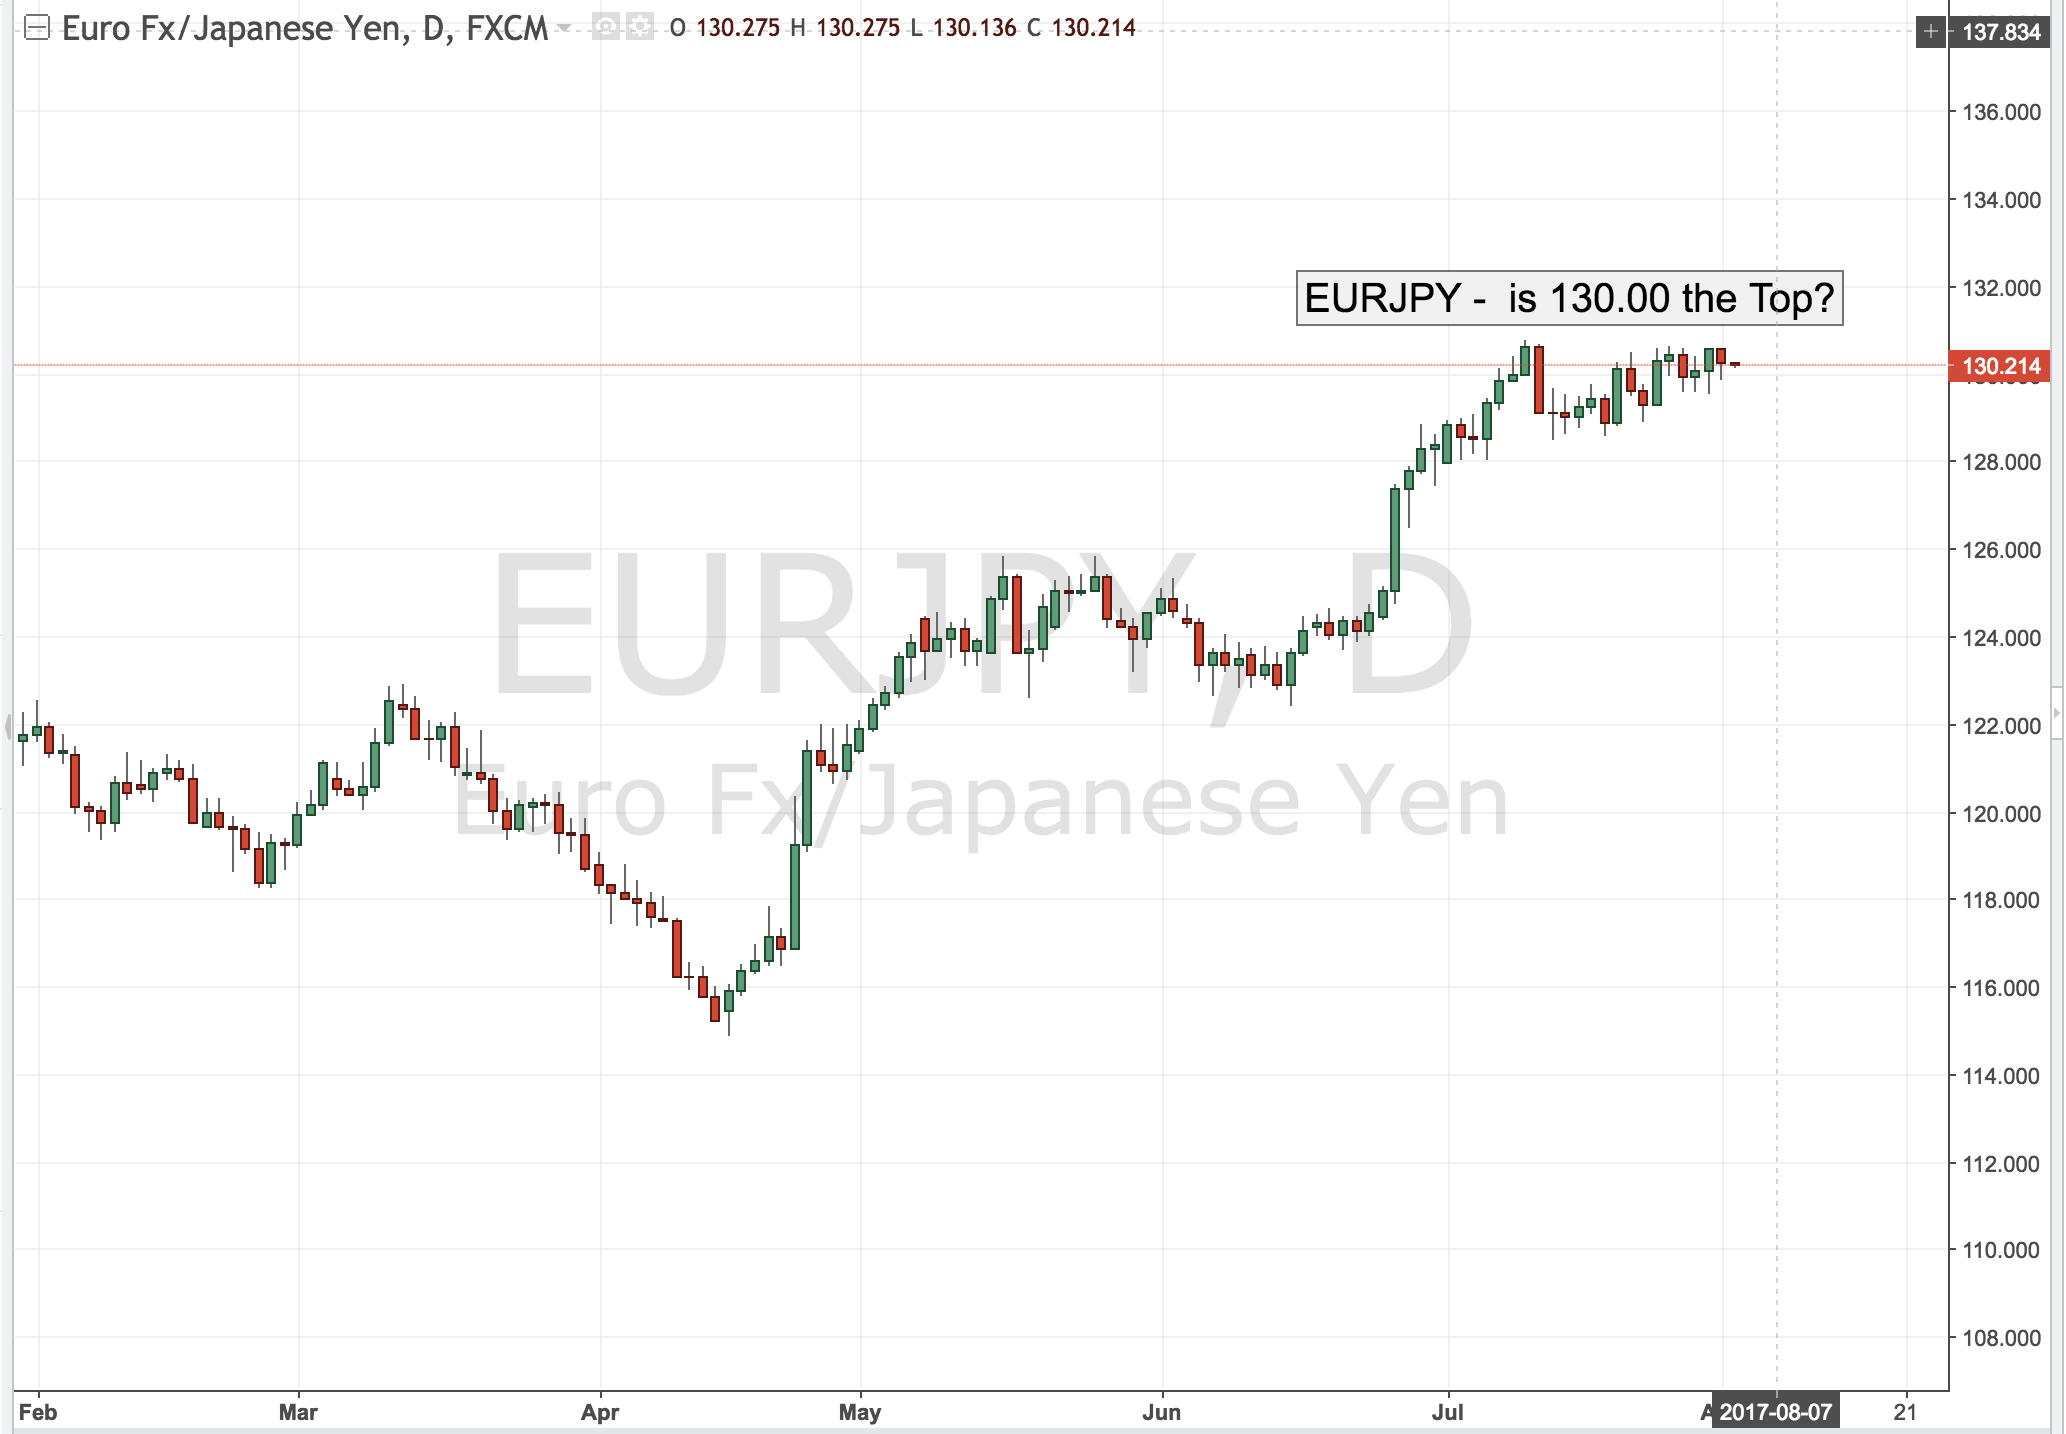 EURJPY is 130.00 the Top?